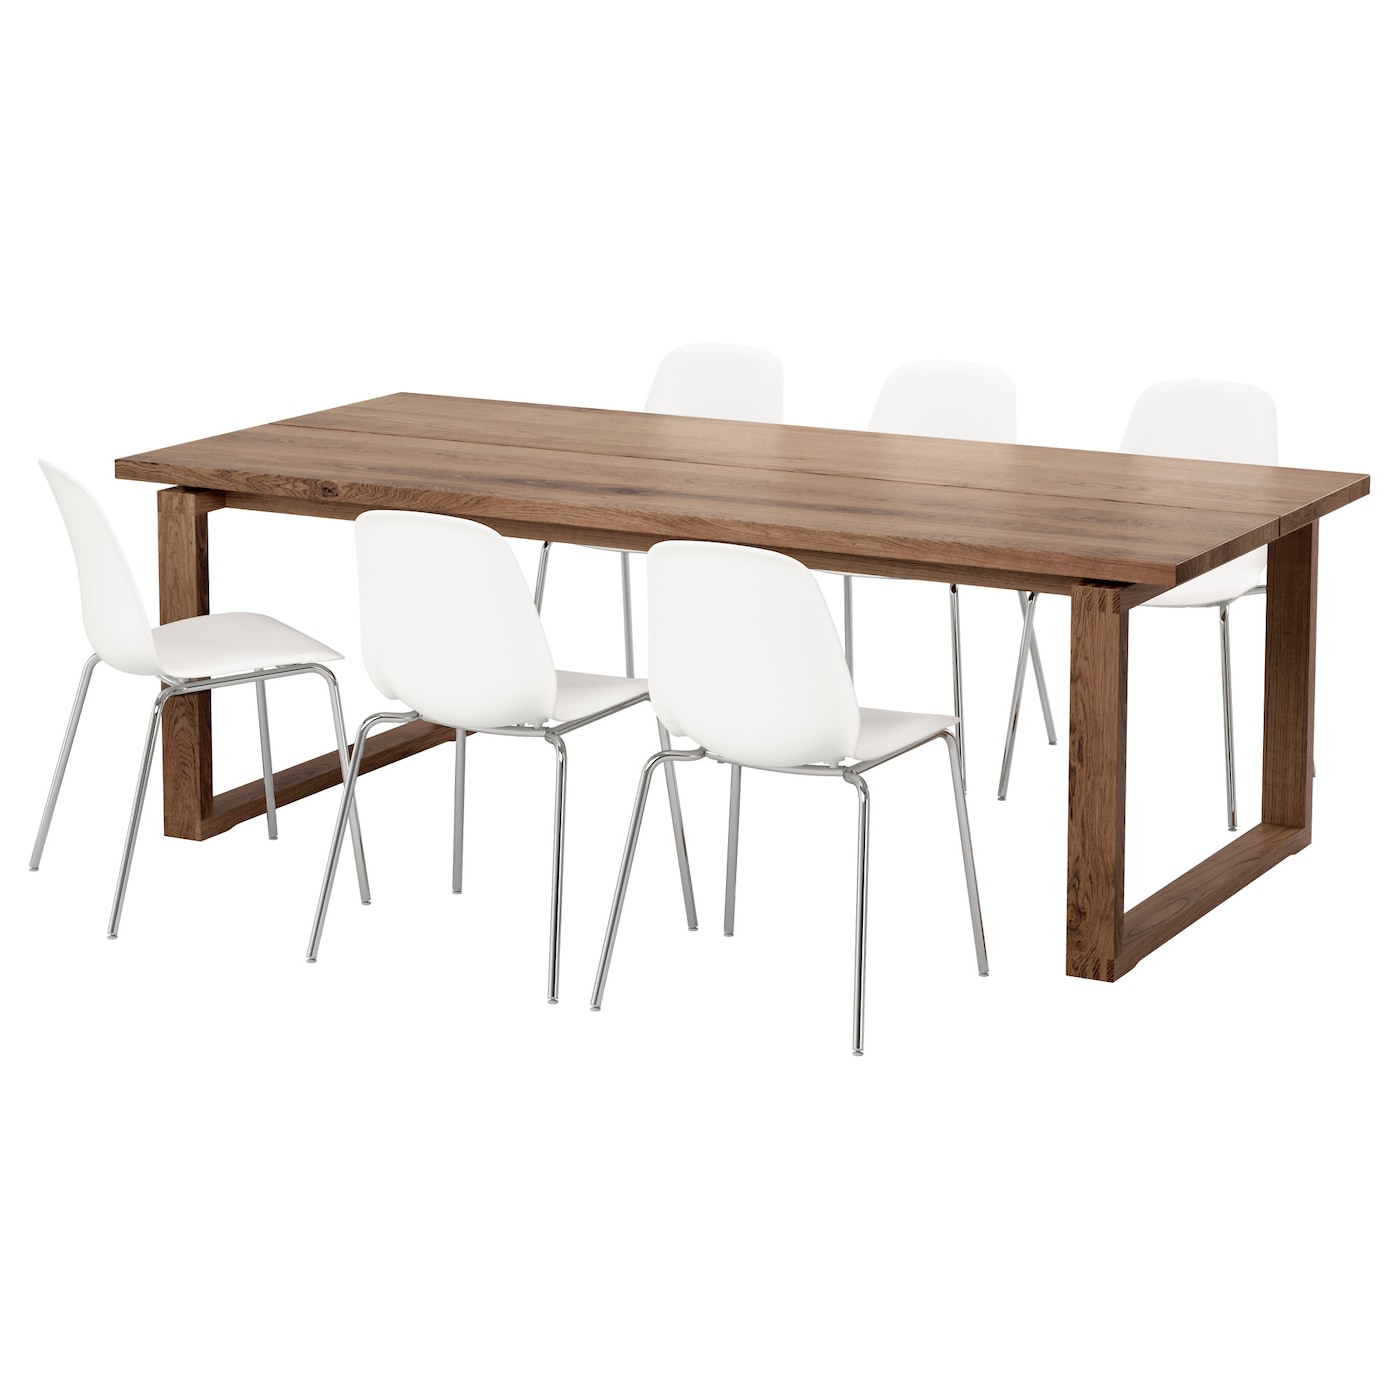 Leifarne m rbyl nga table and 6 chairs brown white 220x100 for Table 6 chaises